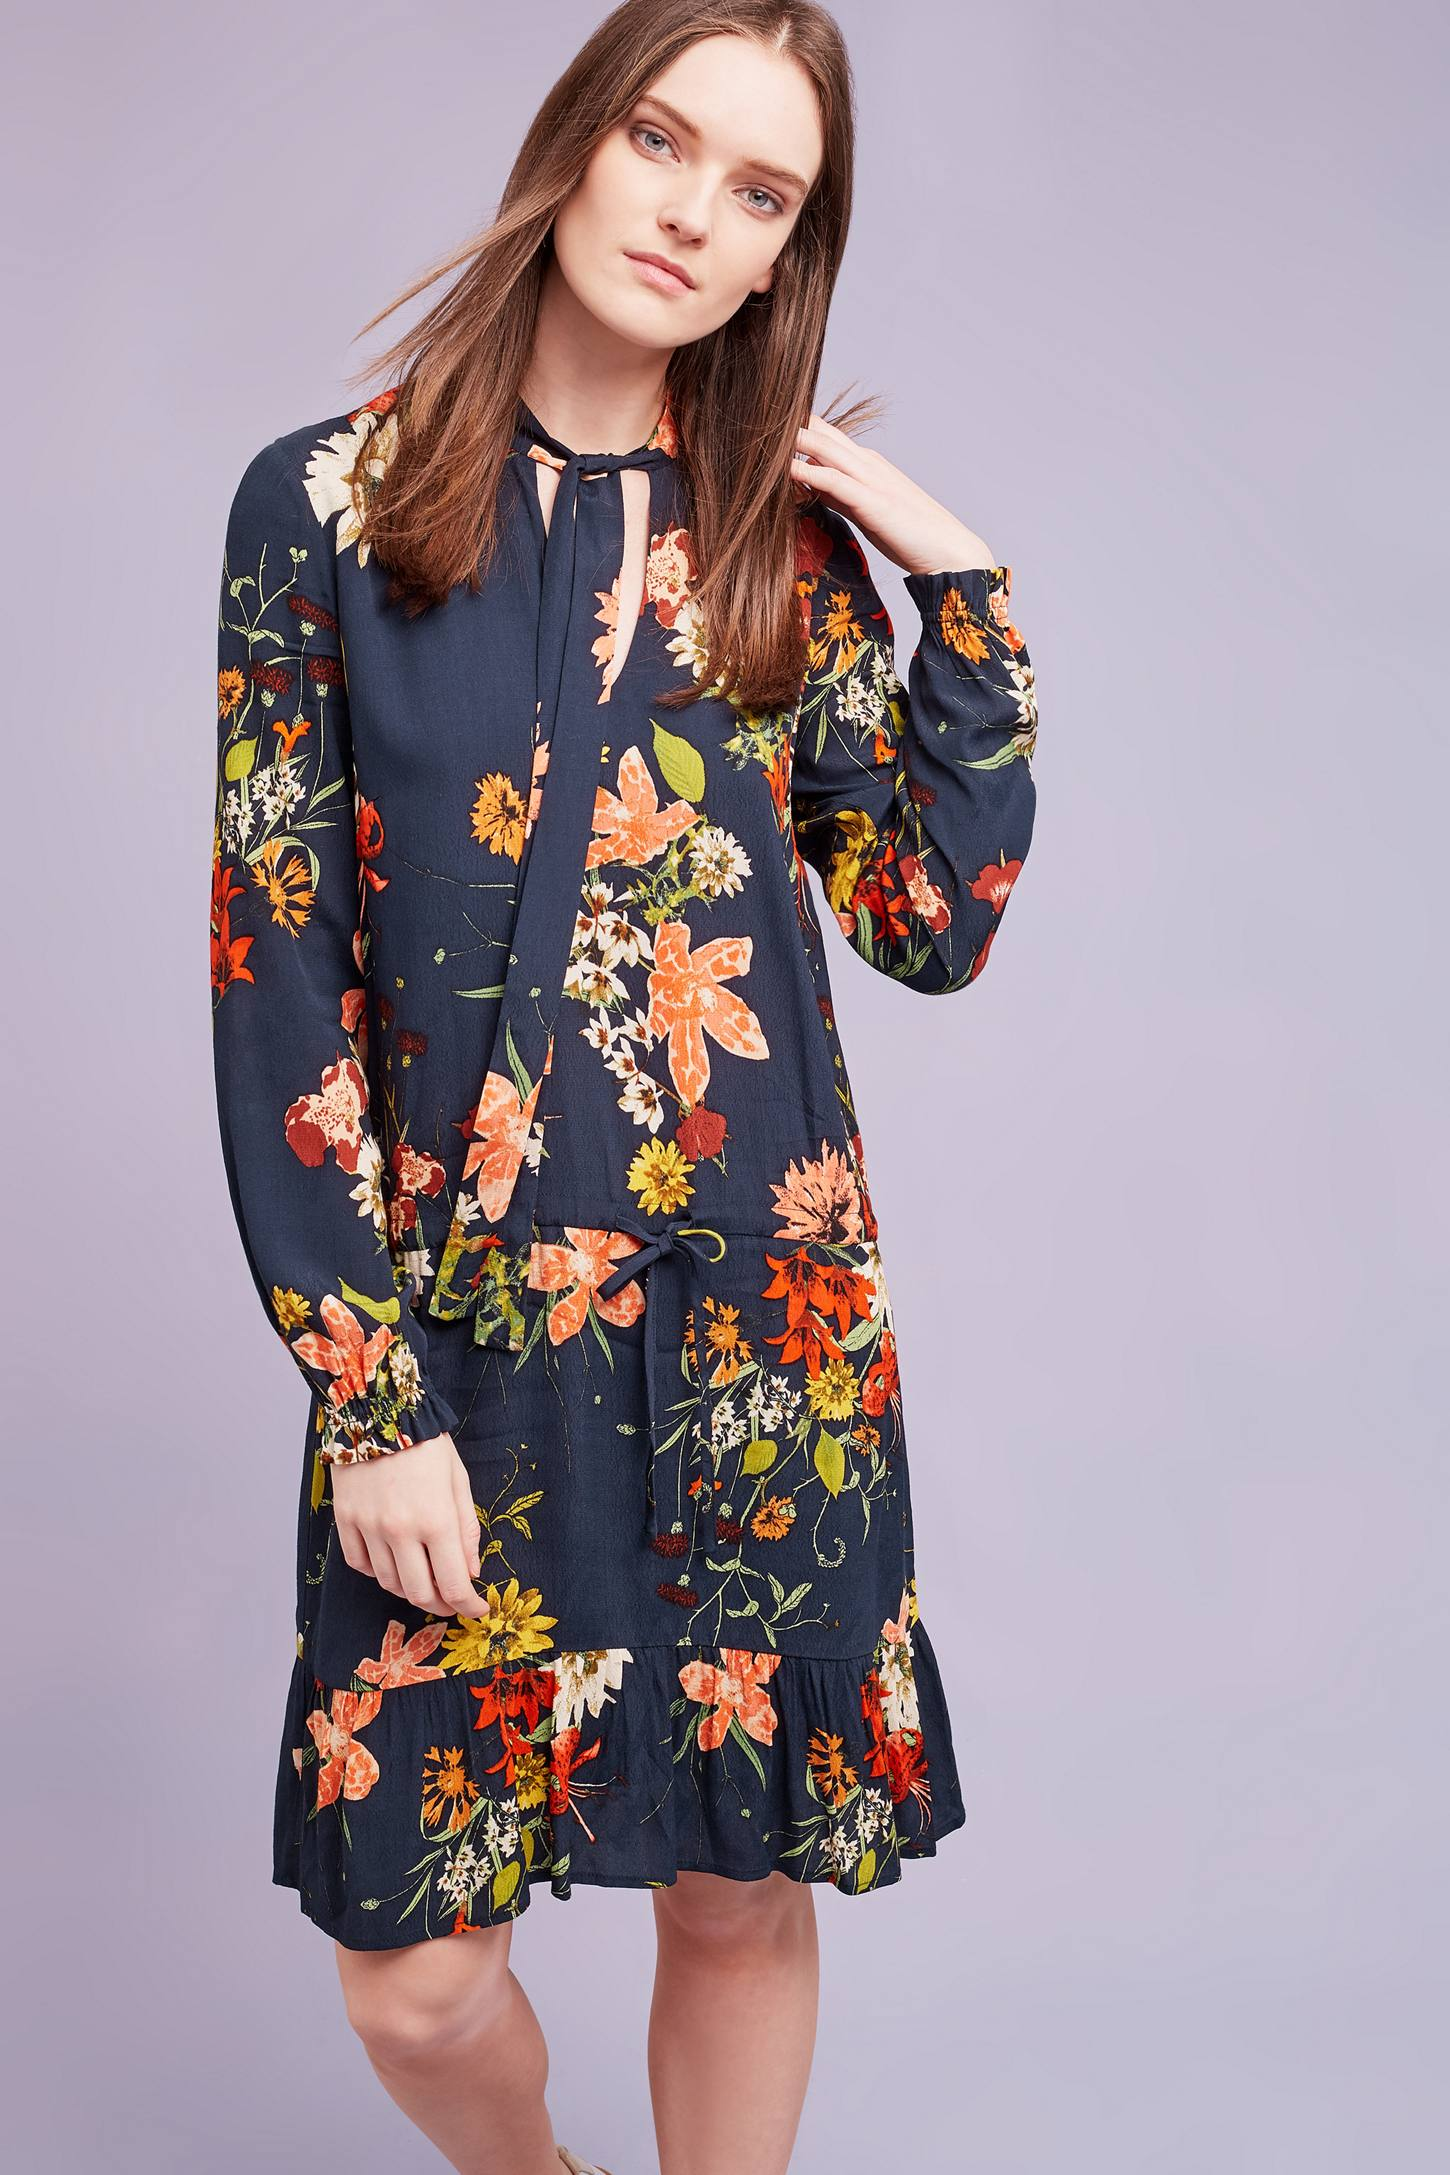 Slide View: 1: Cally Floral Dress, Navy